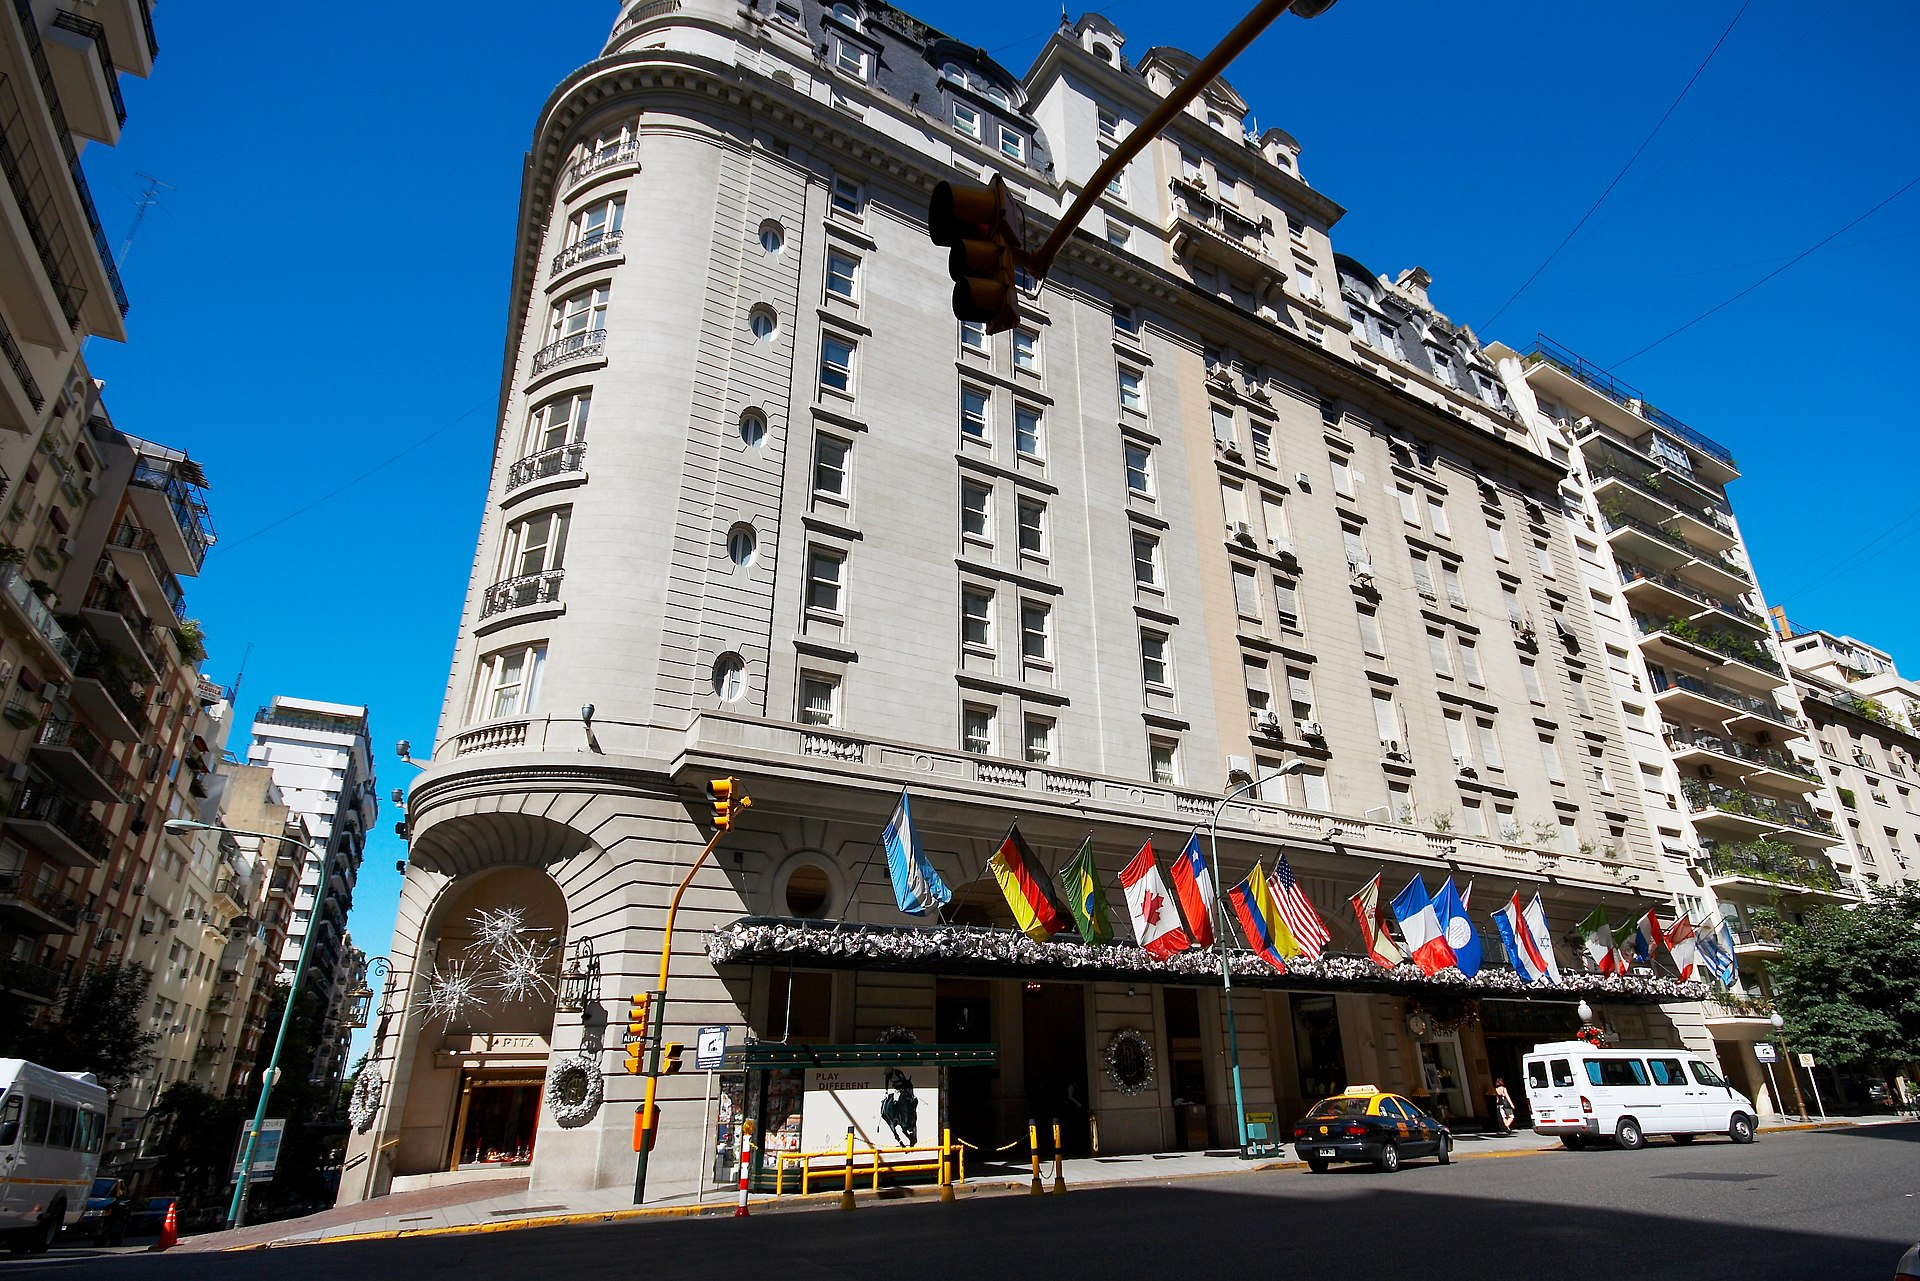 Alvear palace hotel wikipedia for Hotel buenos aires design recoleta